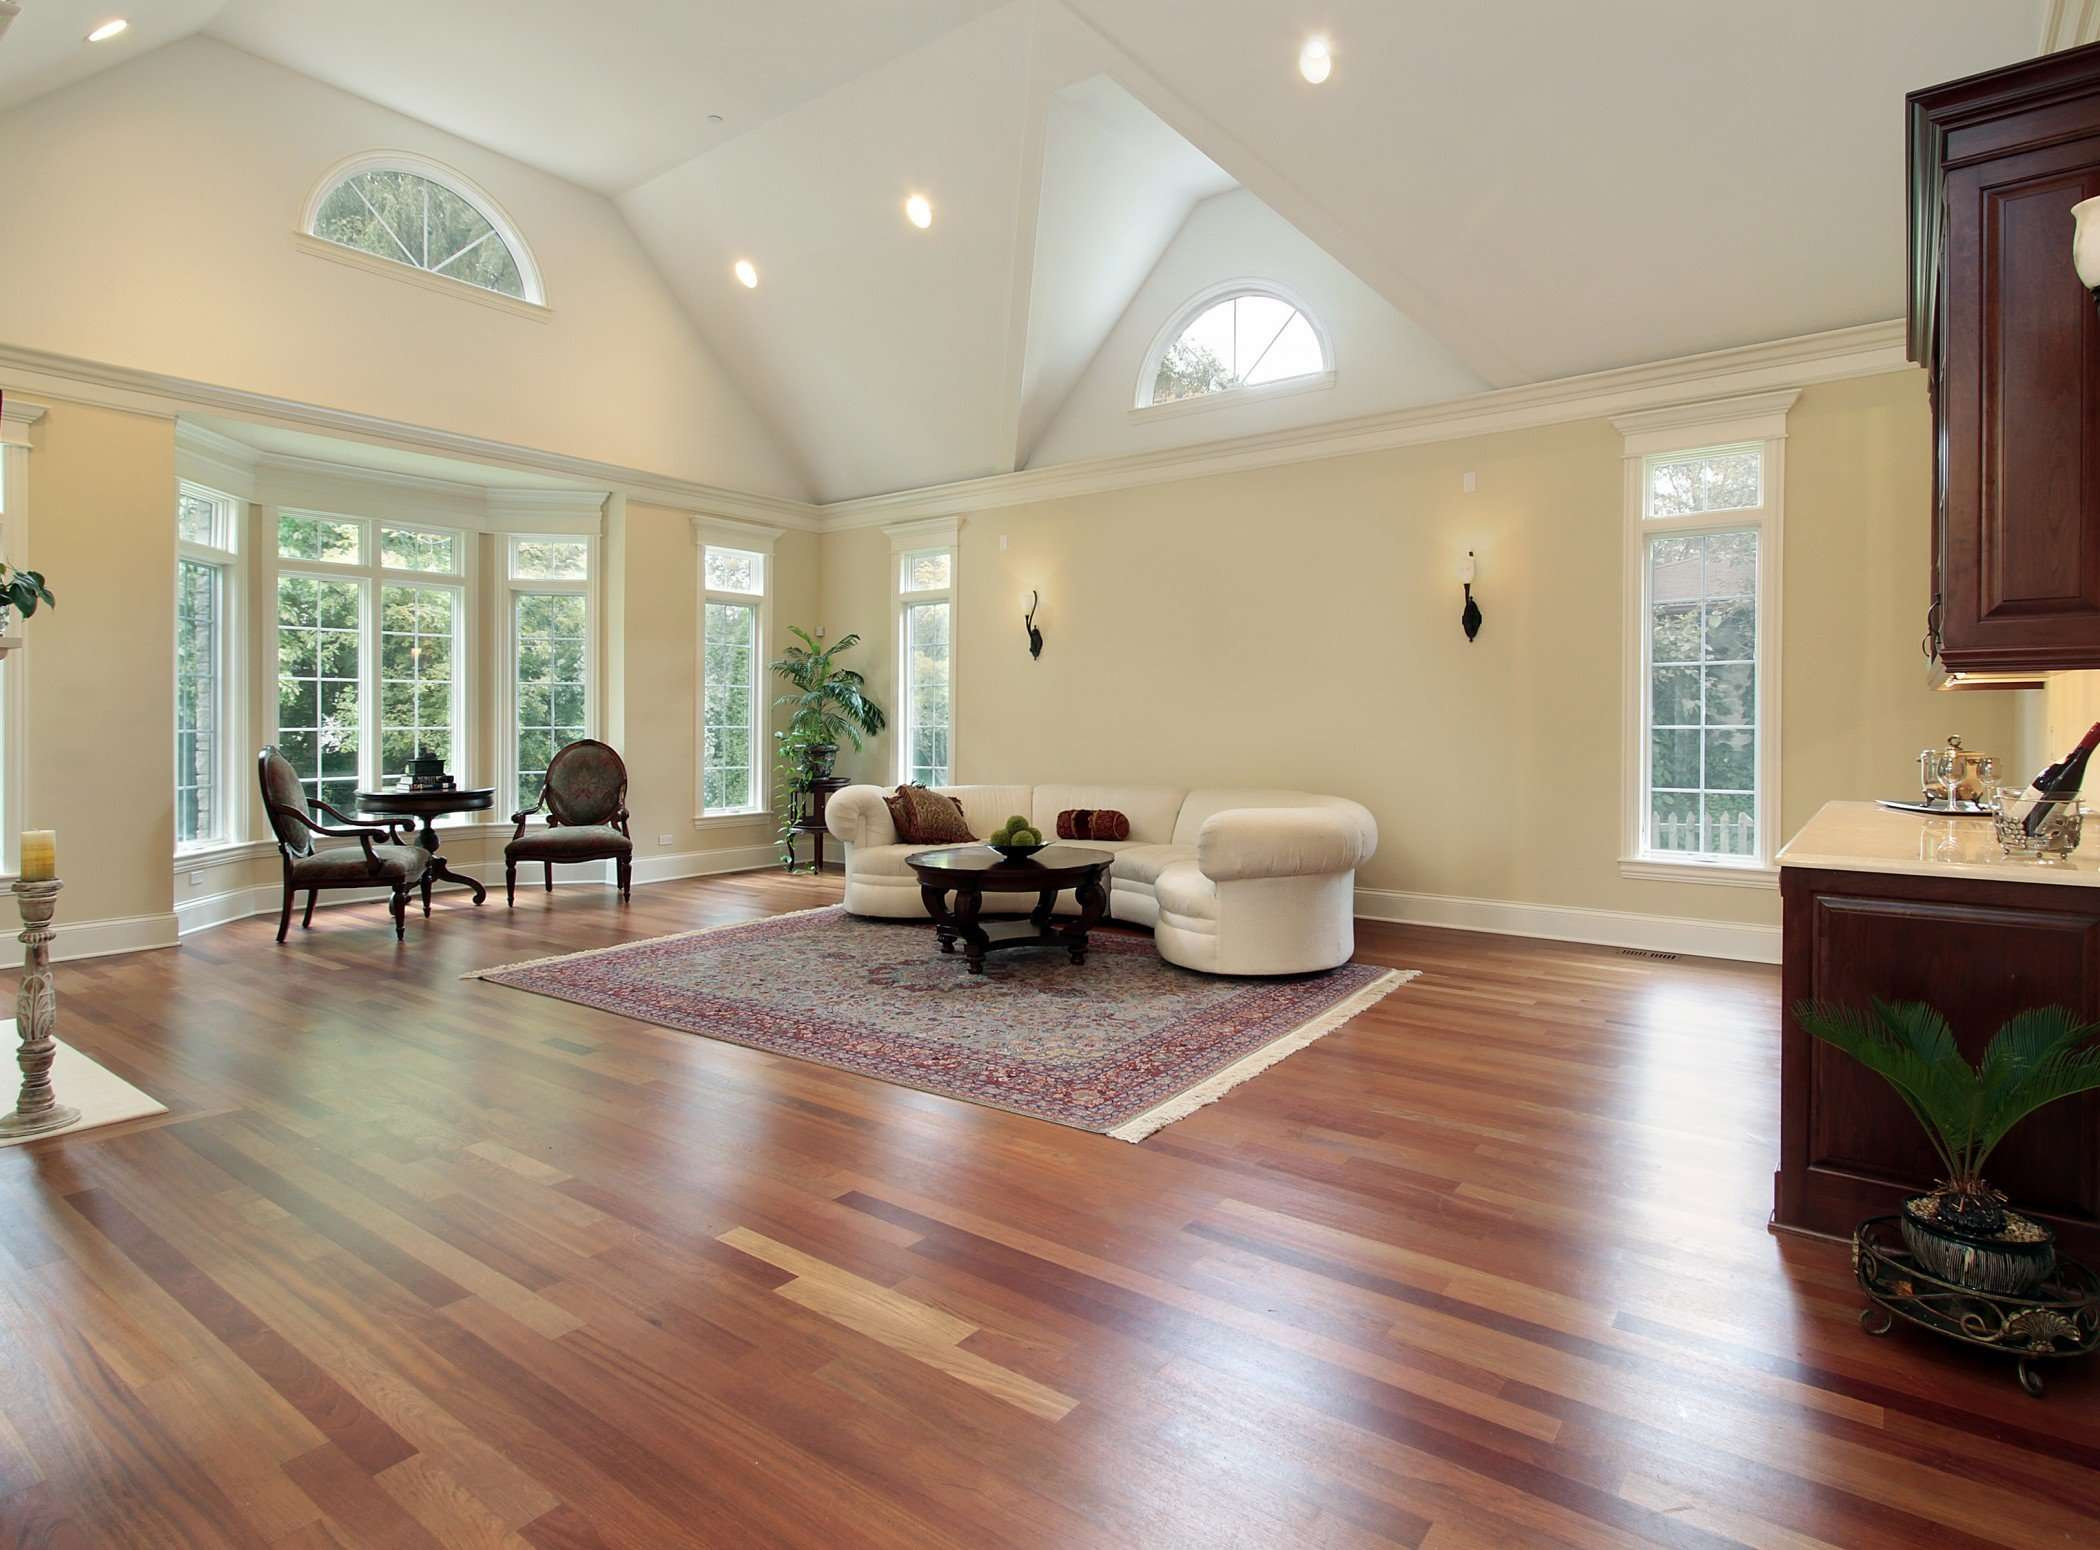 Hardwood Flooring Box Size Of Wood Floor Price Lists A1 Wood Floors Intended for Perths Largest Range Of Wood Floors